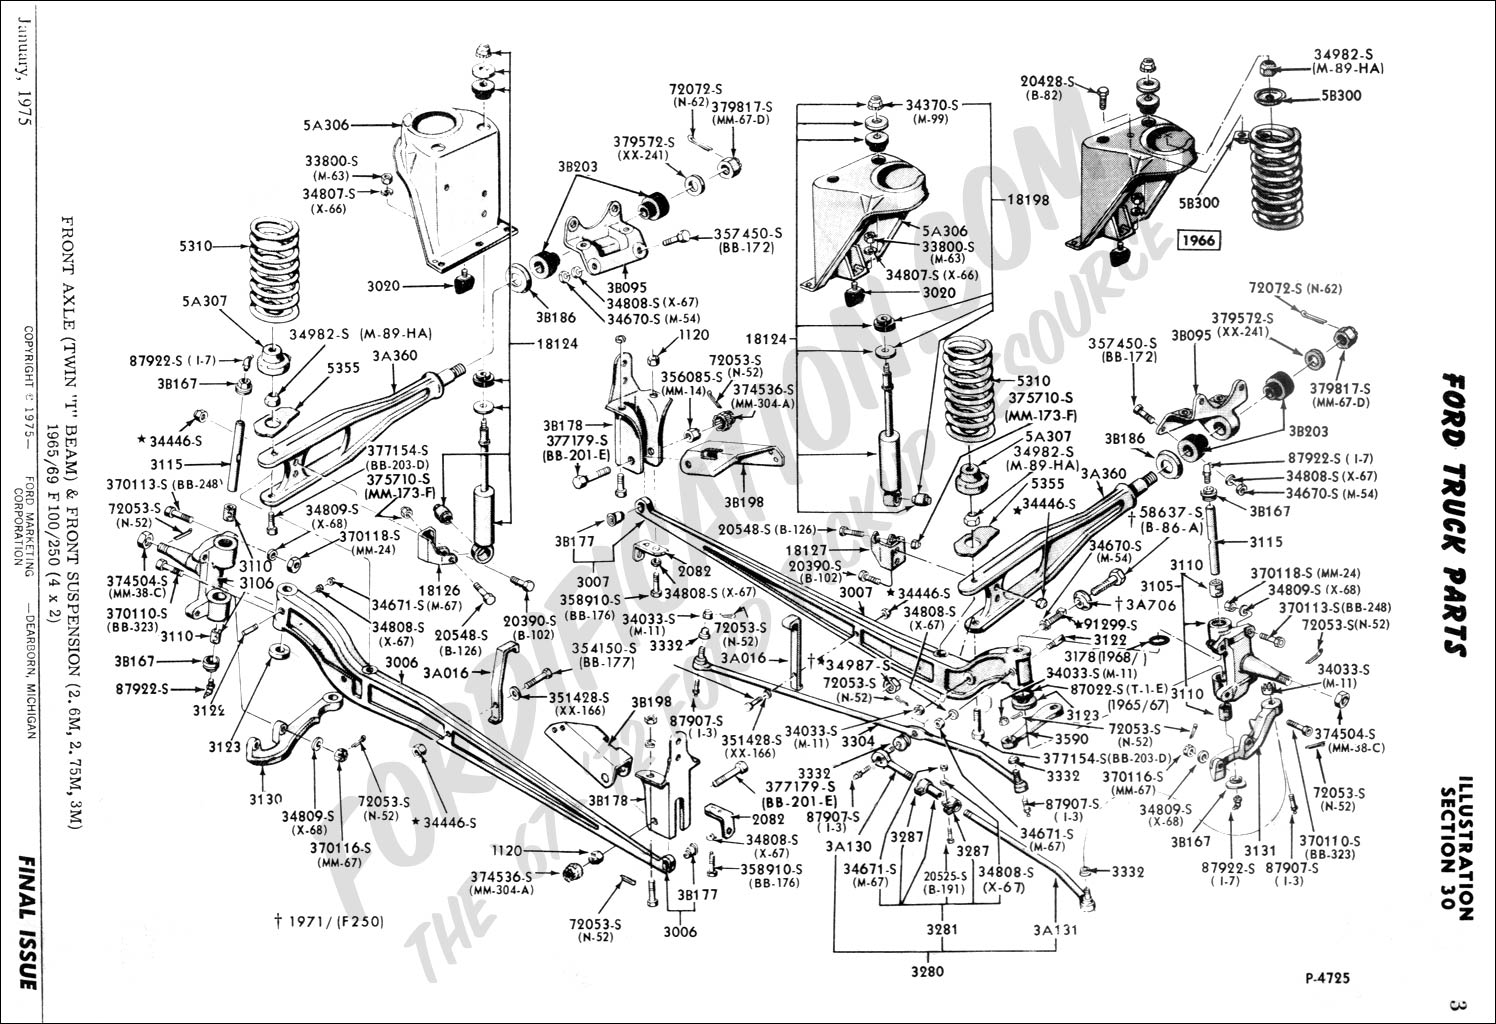 gmc truck front suspension diagram  gmc  free engine image